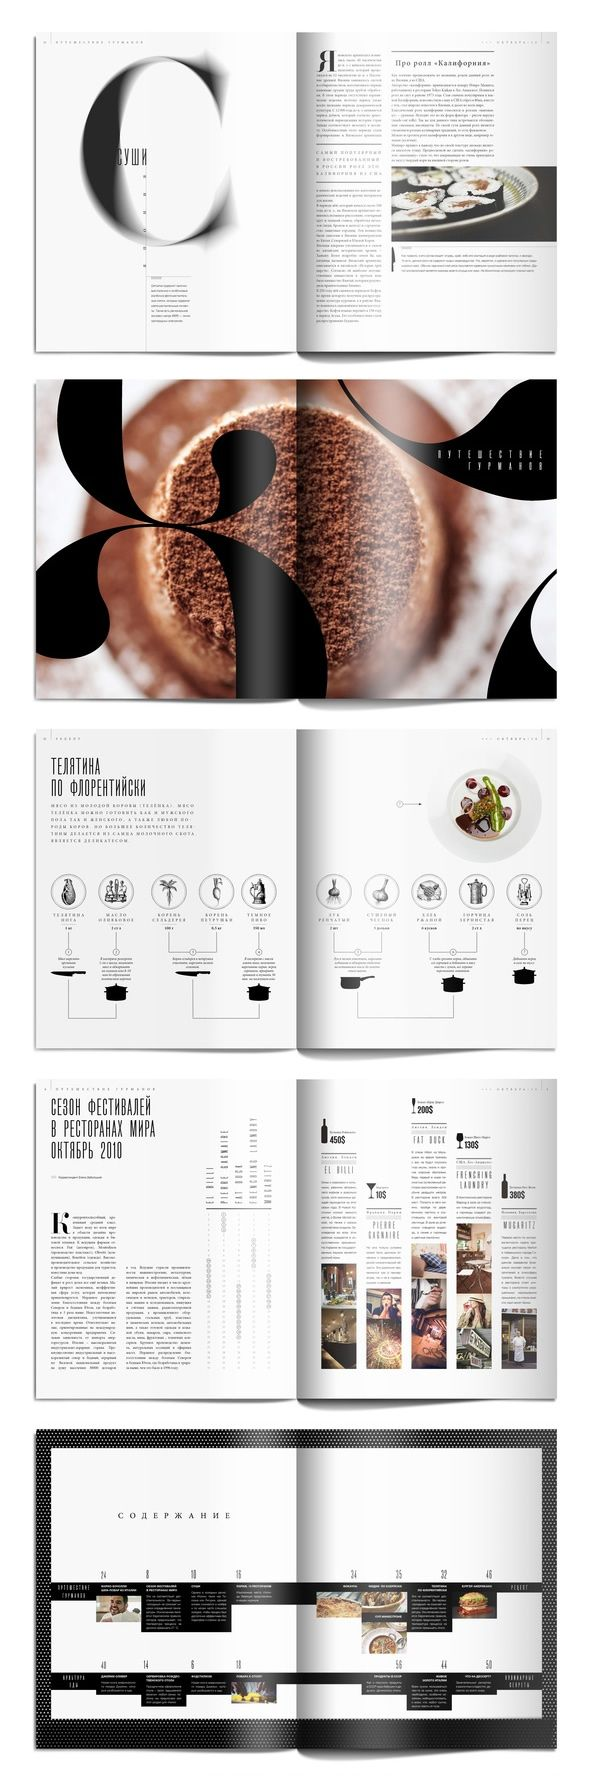 Food Magazine Editorial Design